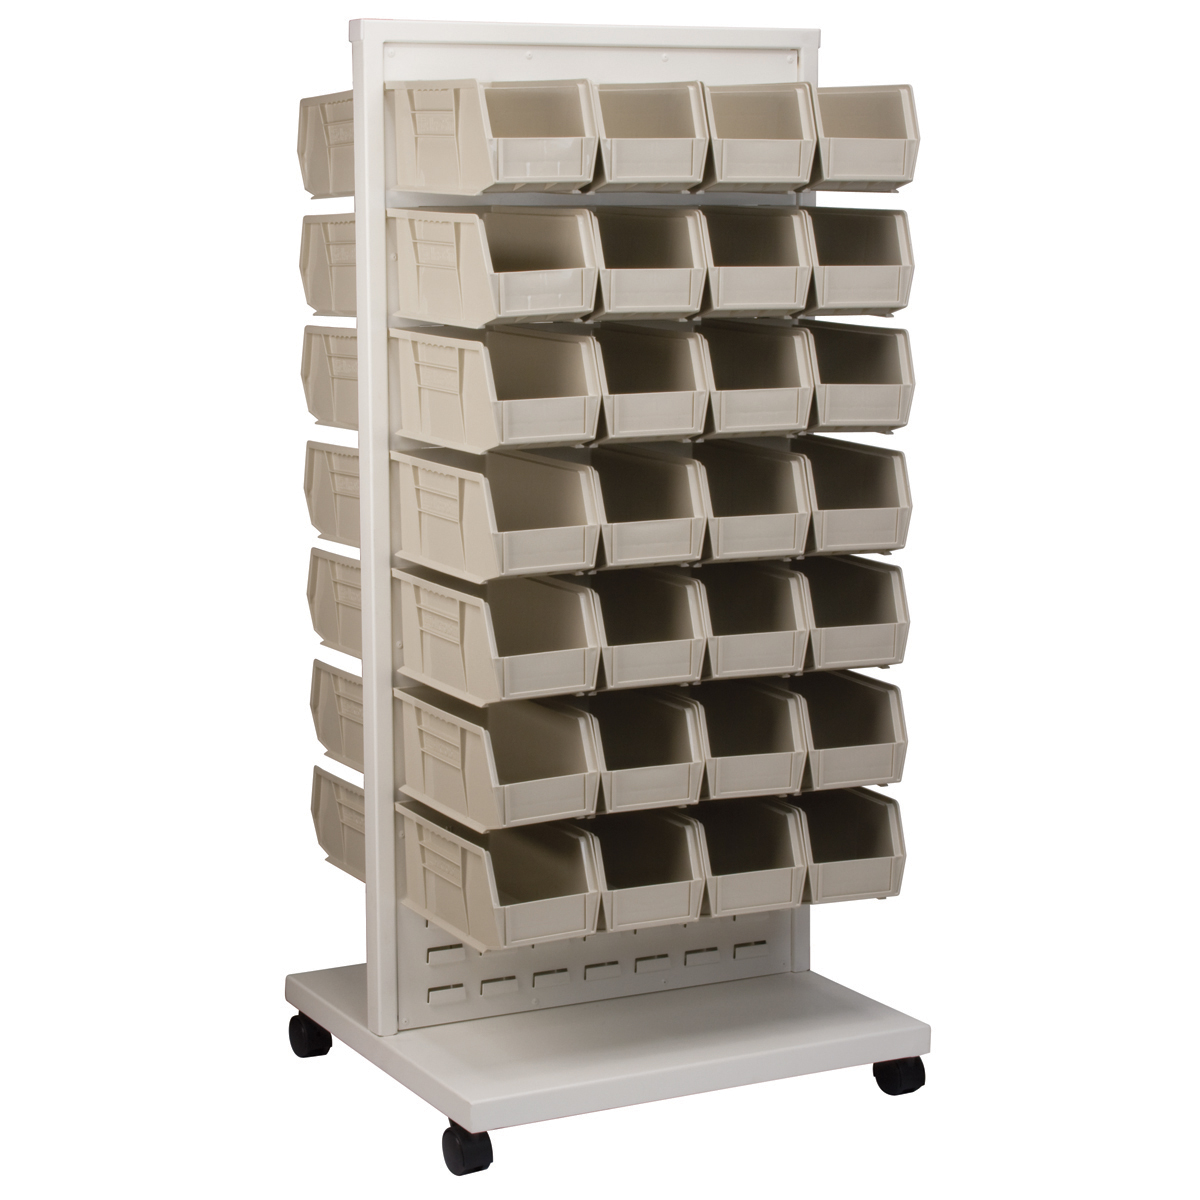 Item DISCONTINUED by Manufacturer.  ReadySpace Floor Unit w/ 60 AkroBins, 30230STONE, White (30553230S).  This item sold in carton quantities of 1.